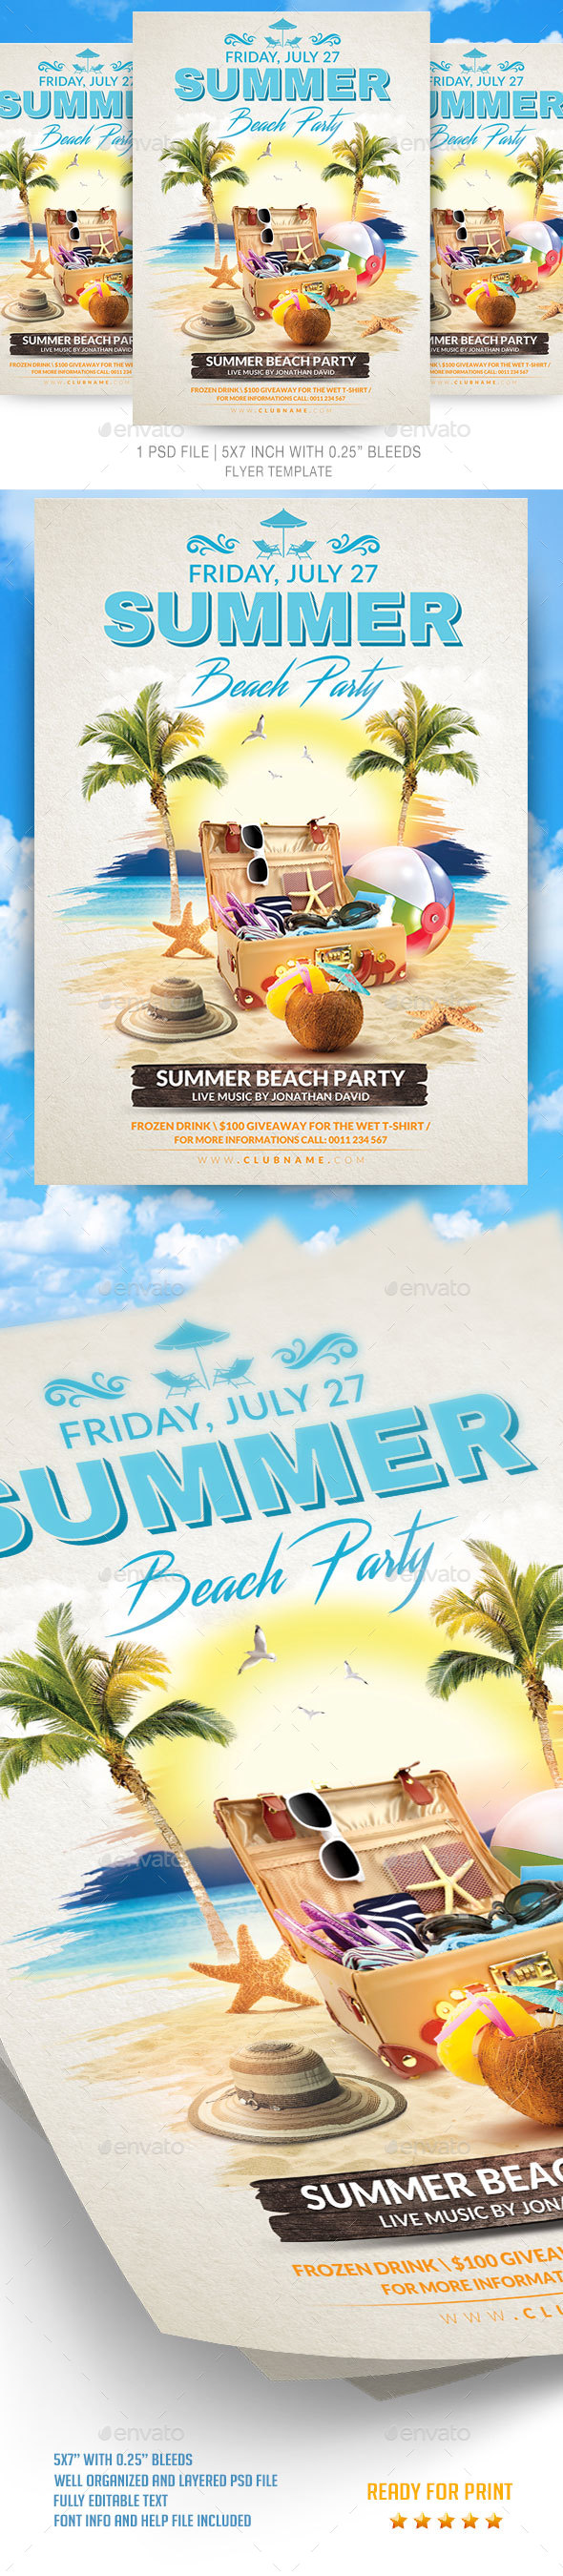 Summer Beach Party Flyer Template - Events Flyers